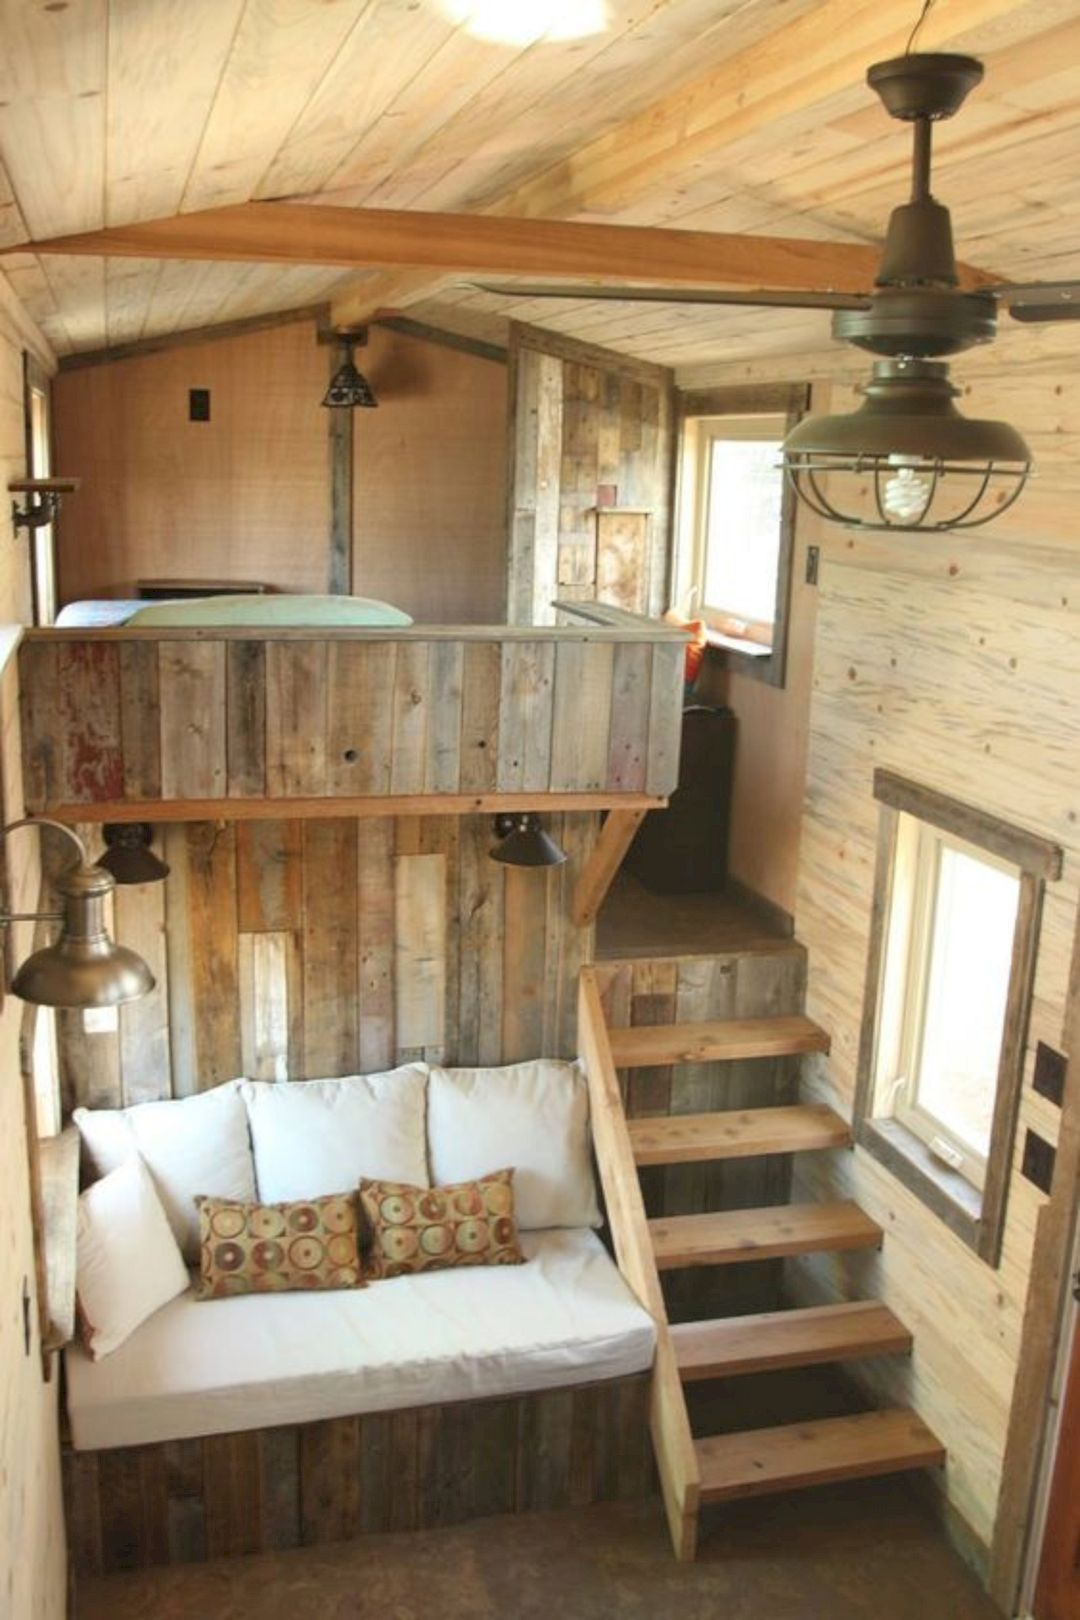 16 Tiny House Interior Design Ideas Tiny House Cabin